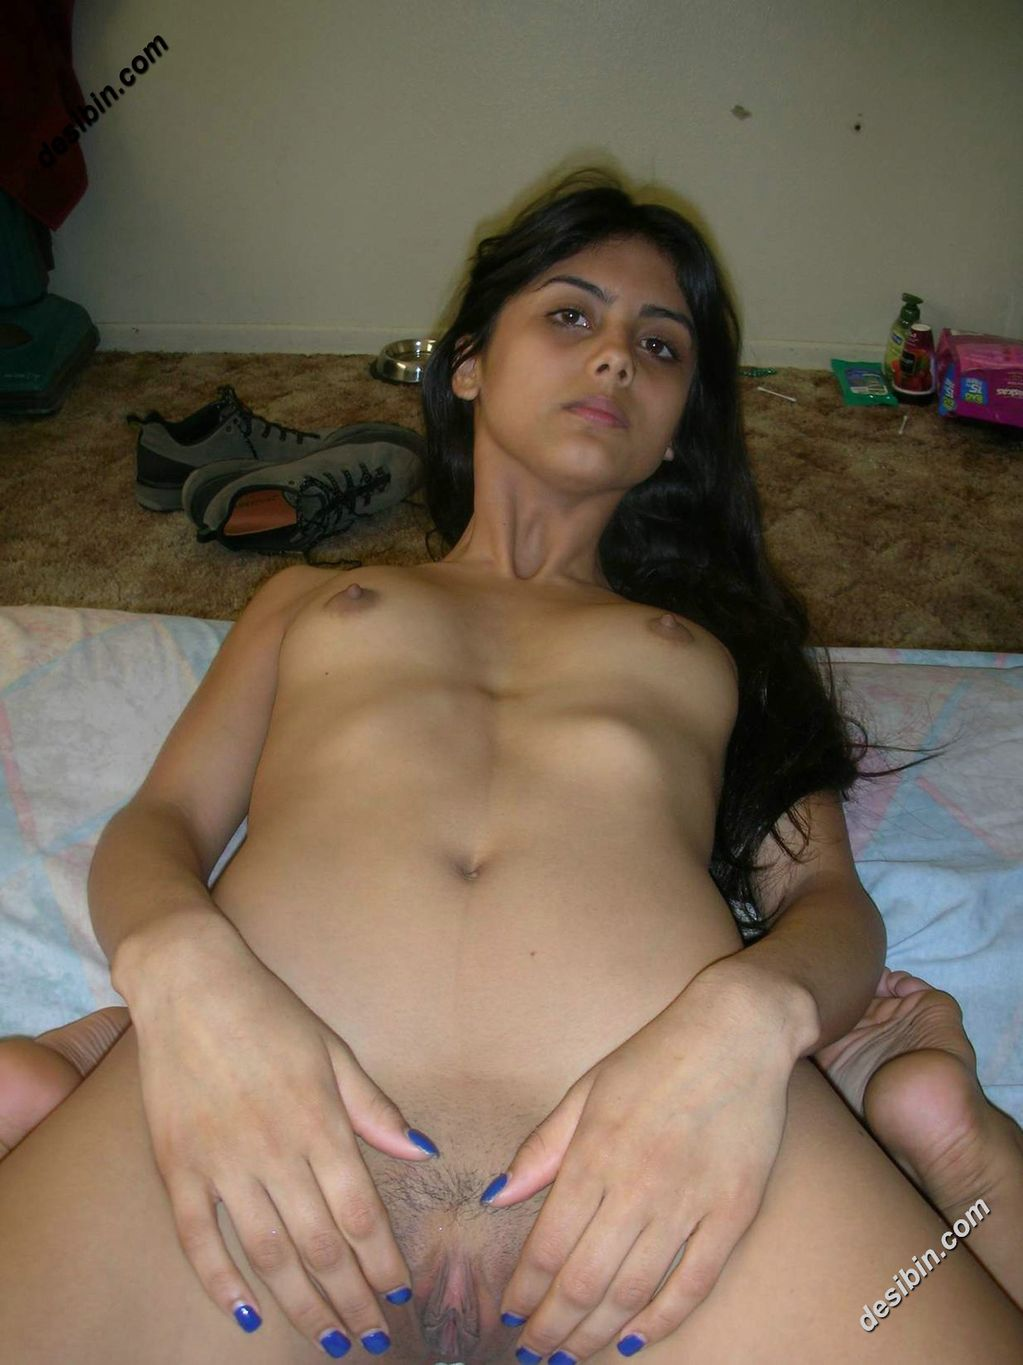 Mine, Naked pic indian models with you